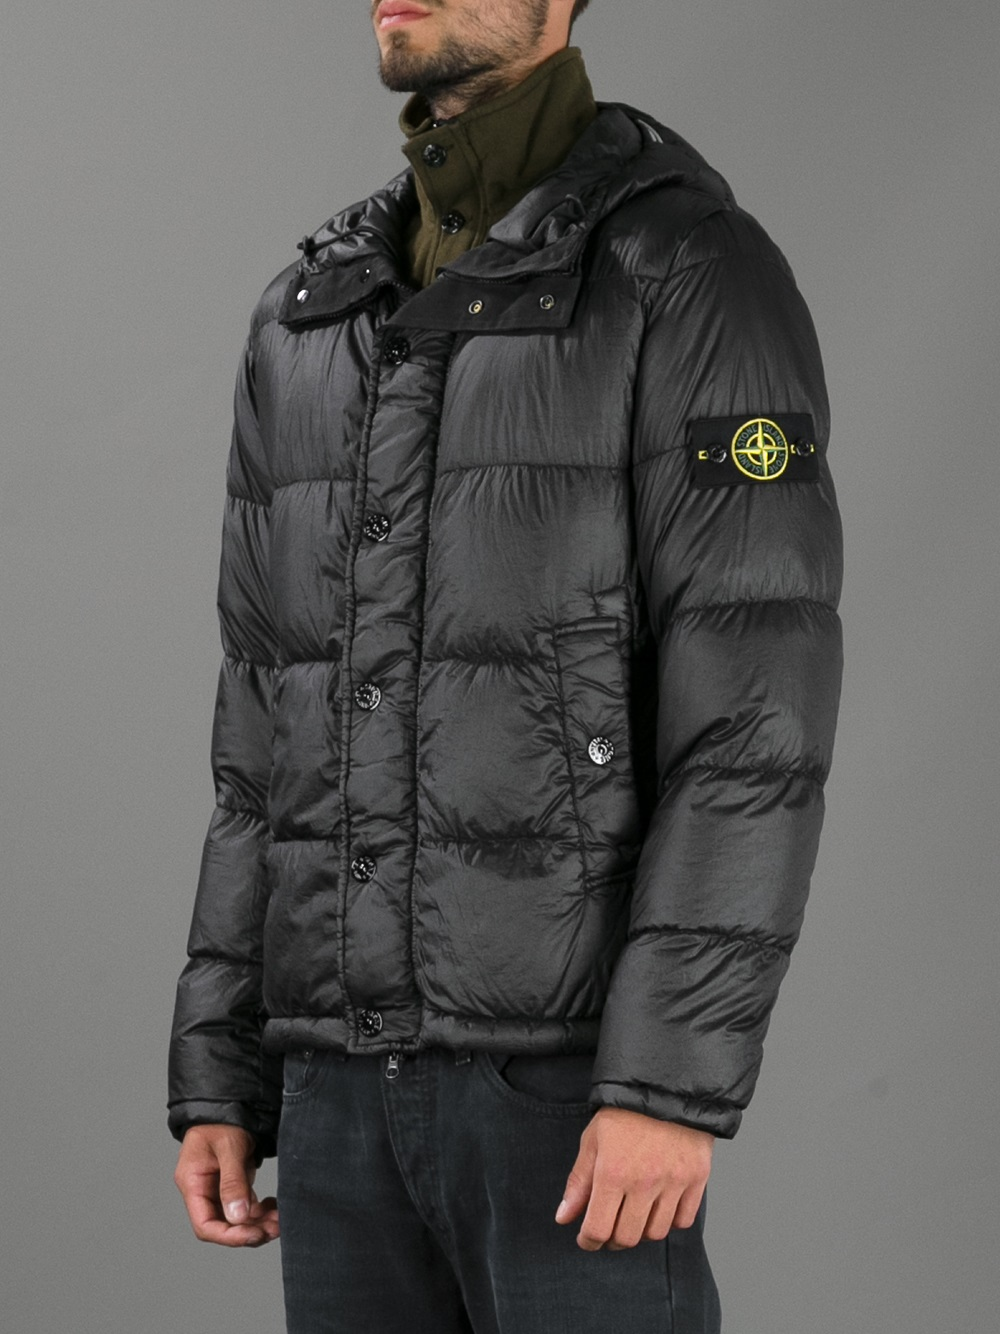 skate shoes entire collection quality products Stone Island Padded Jacket in Black for Men - Lyst